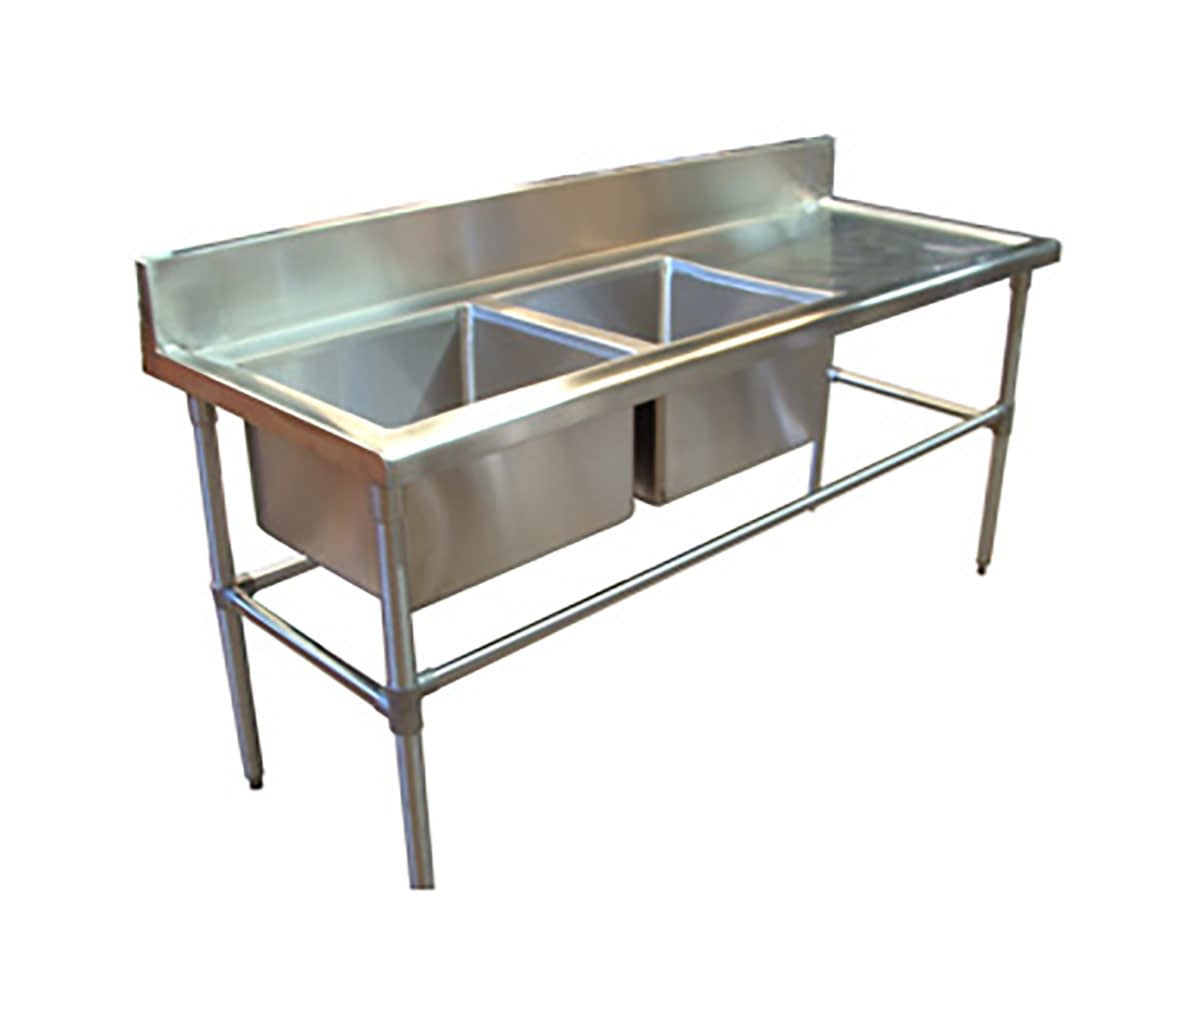 Double Bowl Stainless Sink – Right Bench, 1900 x 700 x 900mm high